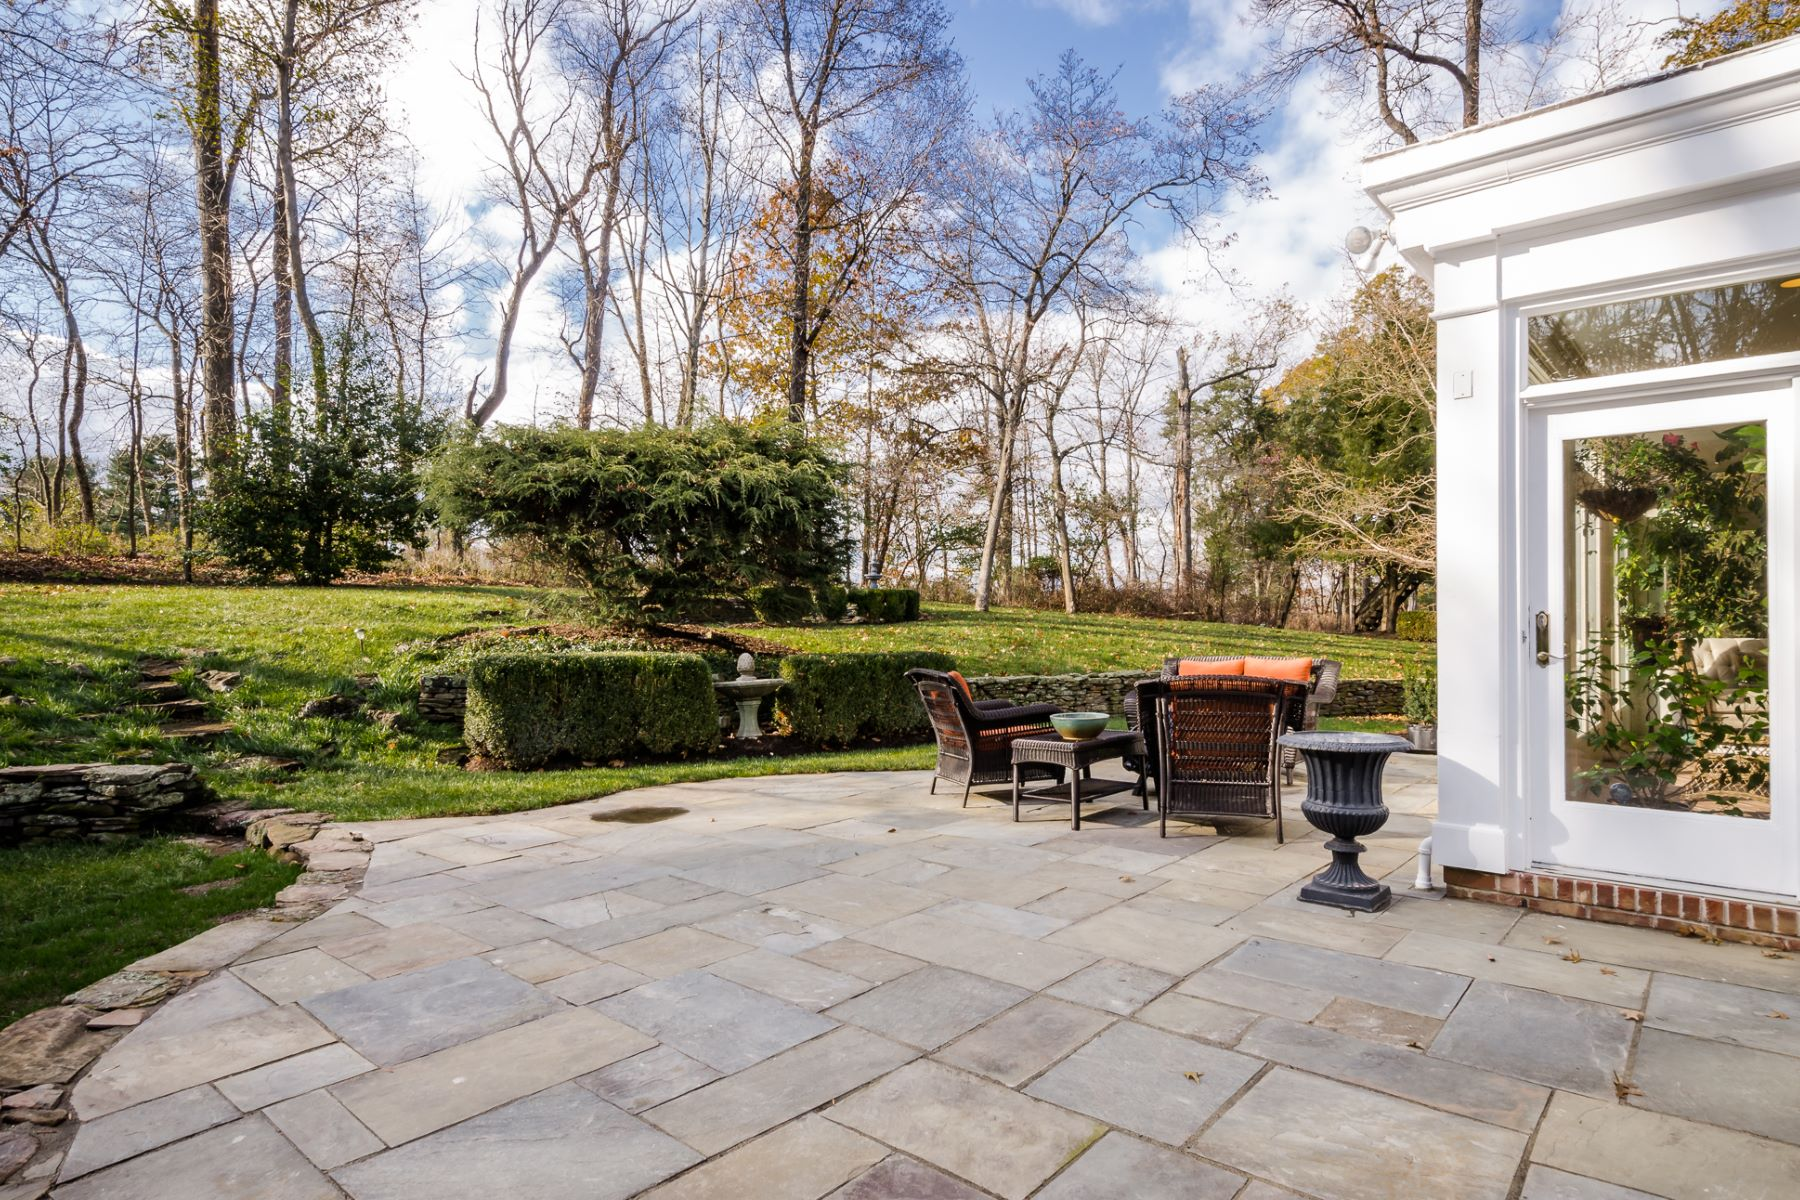 Additional photo for property listing at A Welcoming Home with Professional Touches 25 Duncan Lane, Skillman, New Jersey 08558 United States